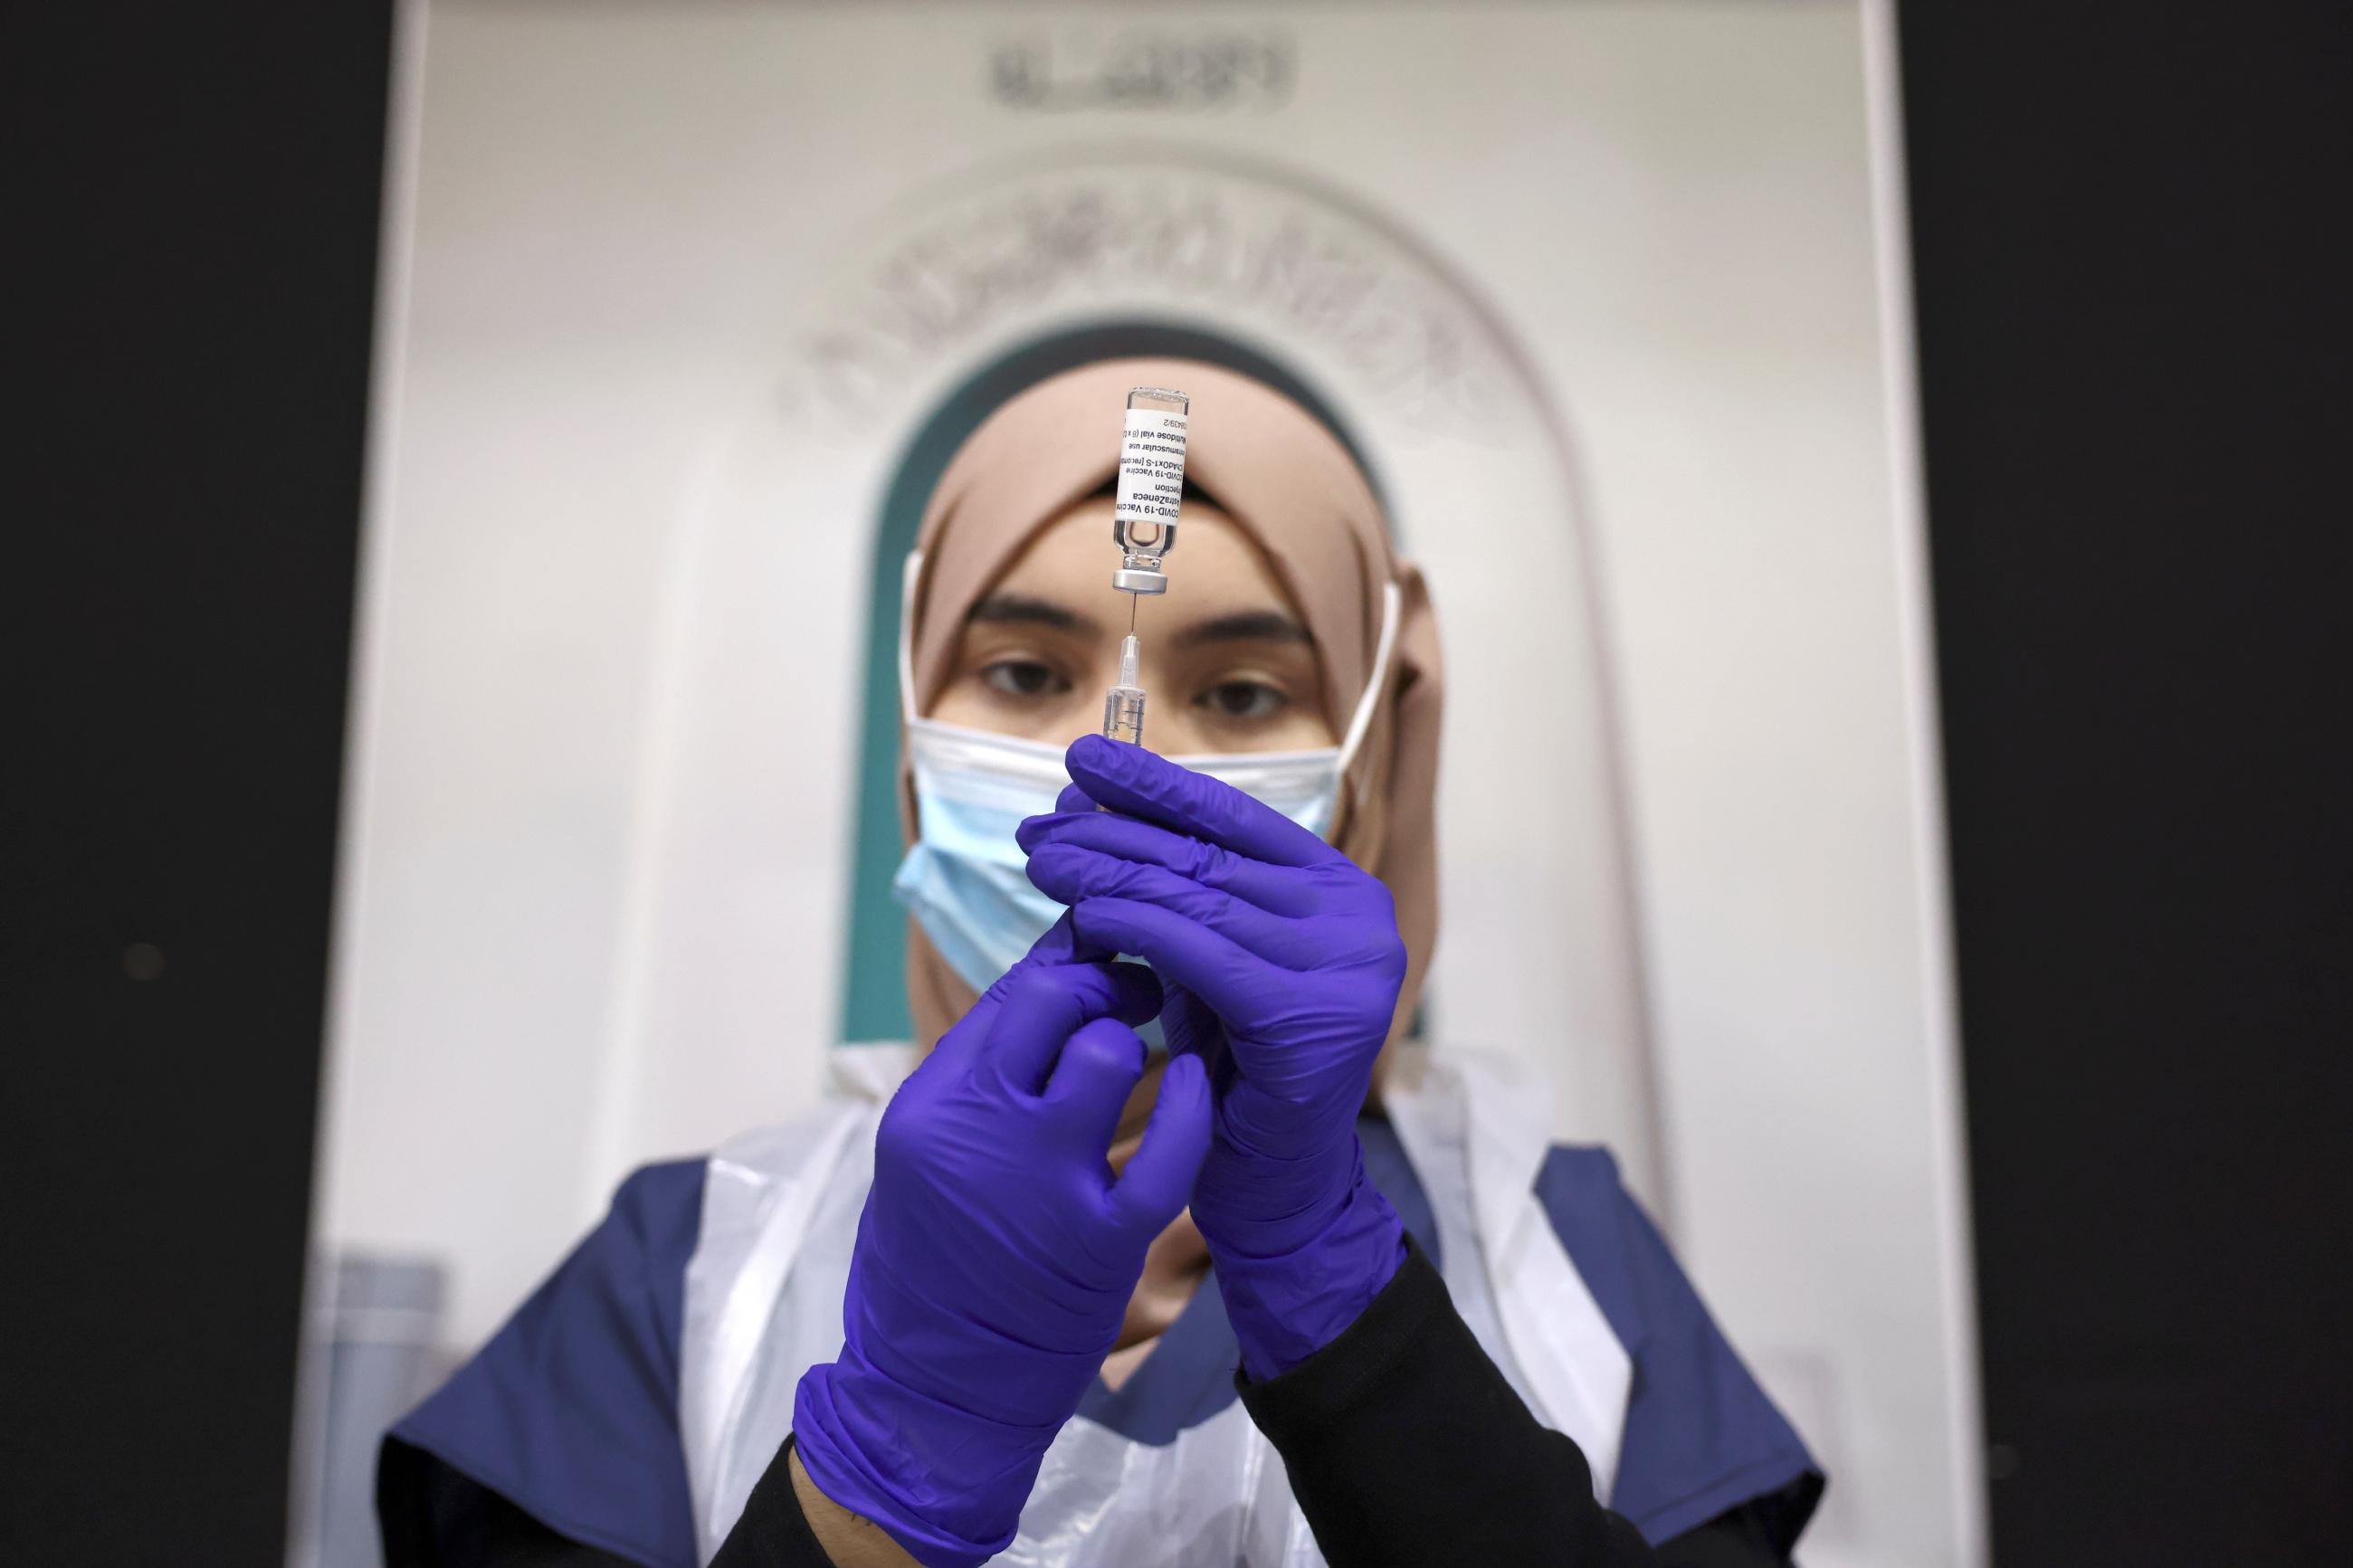 A medical worker prepares an injection with a dose of Astra Zeneca coronavirus vaccine, at a vaccination centre in Baitul Futuh Mosque, amid the outbreak of coronavirus disease (COVID-19), in London, Britain, March 28, 2021